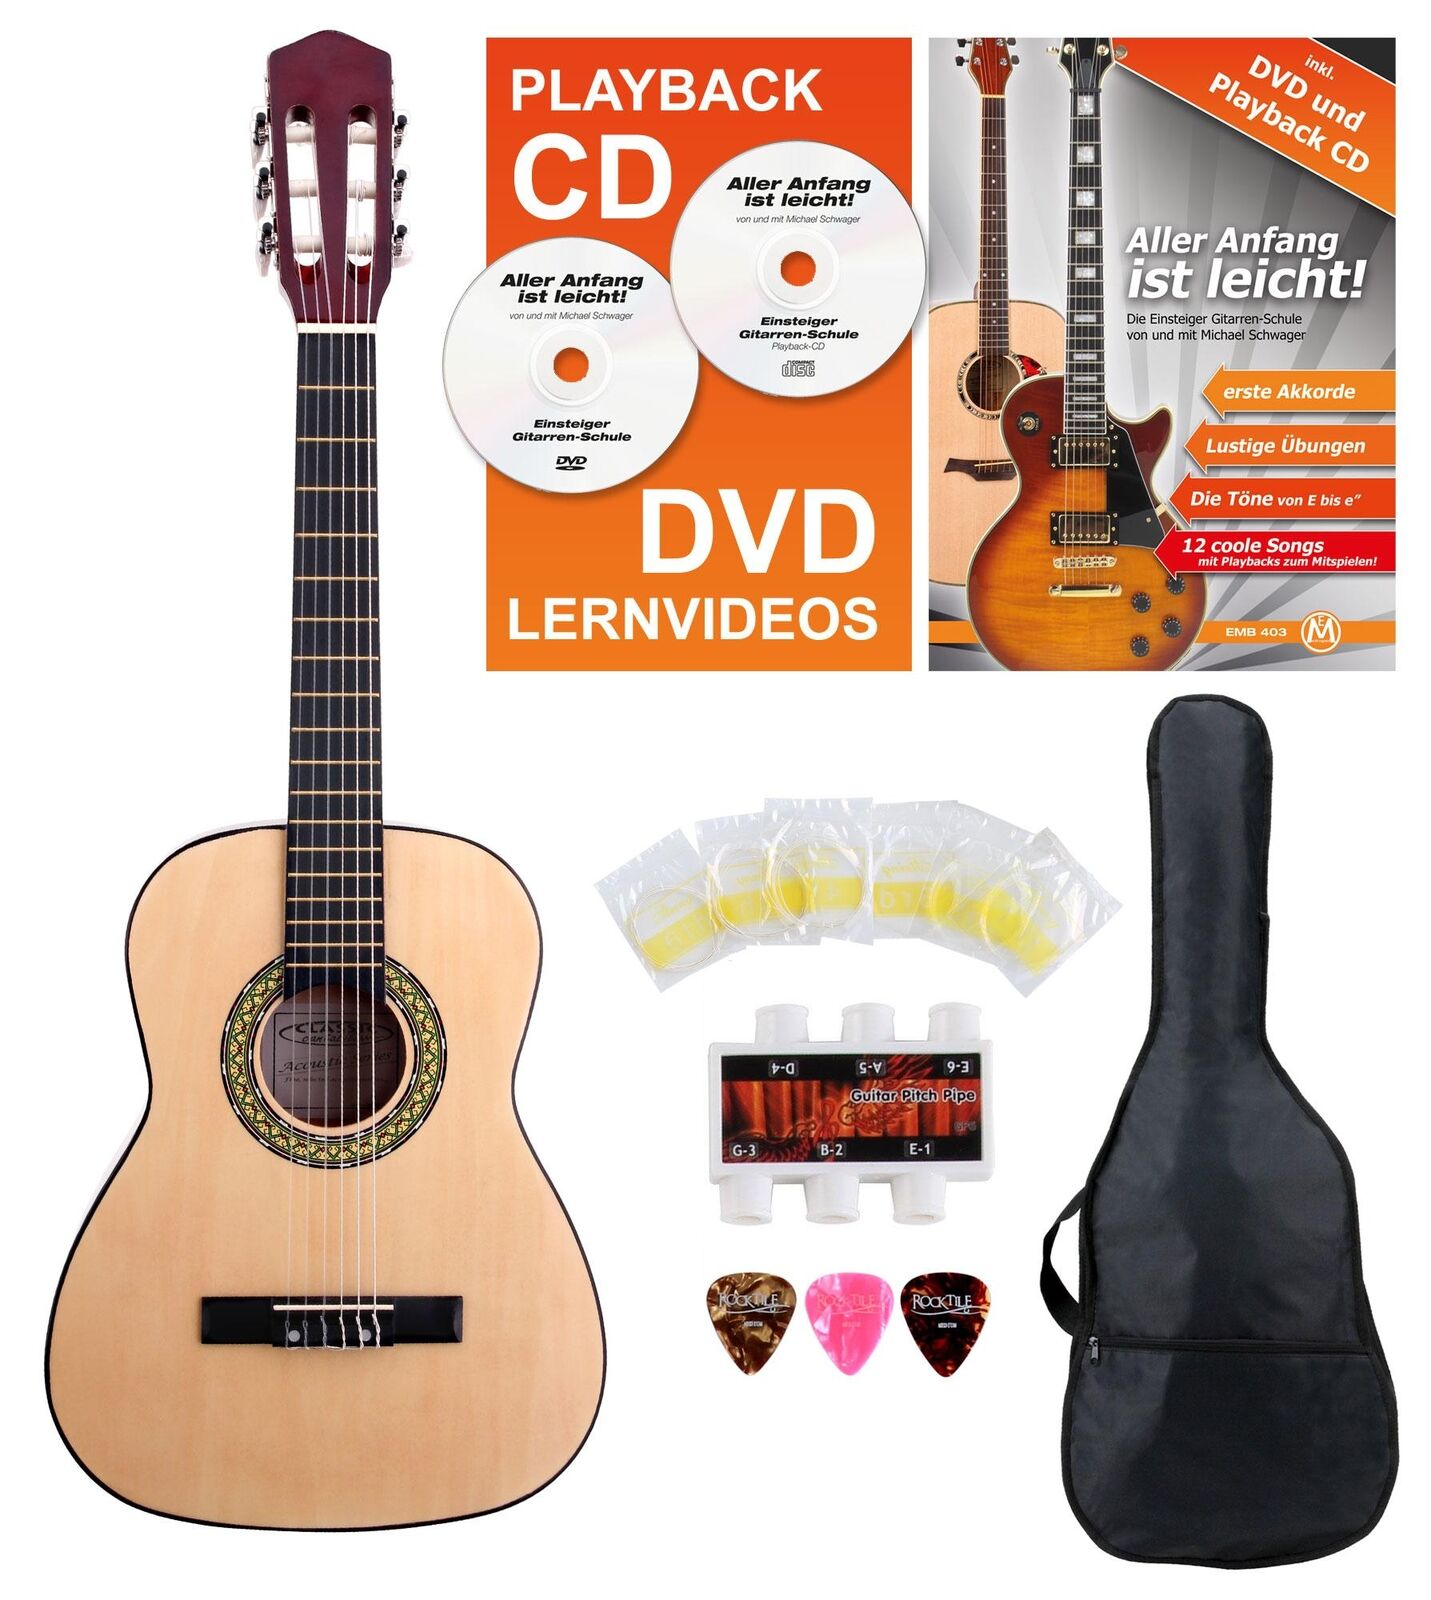 CLASSIC CANTABILE AS-851-L STARTER SET AKUSTIK KLASSIK GITARRE 1/2 LINKSHÄNDER